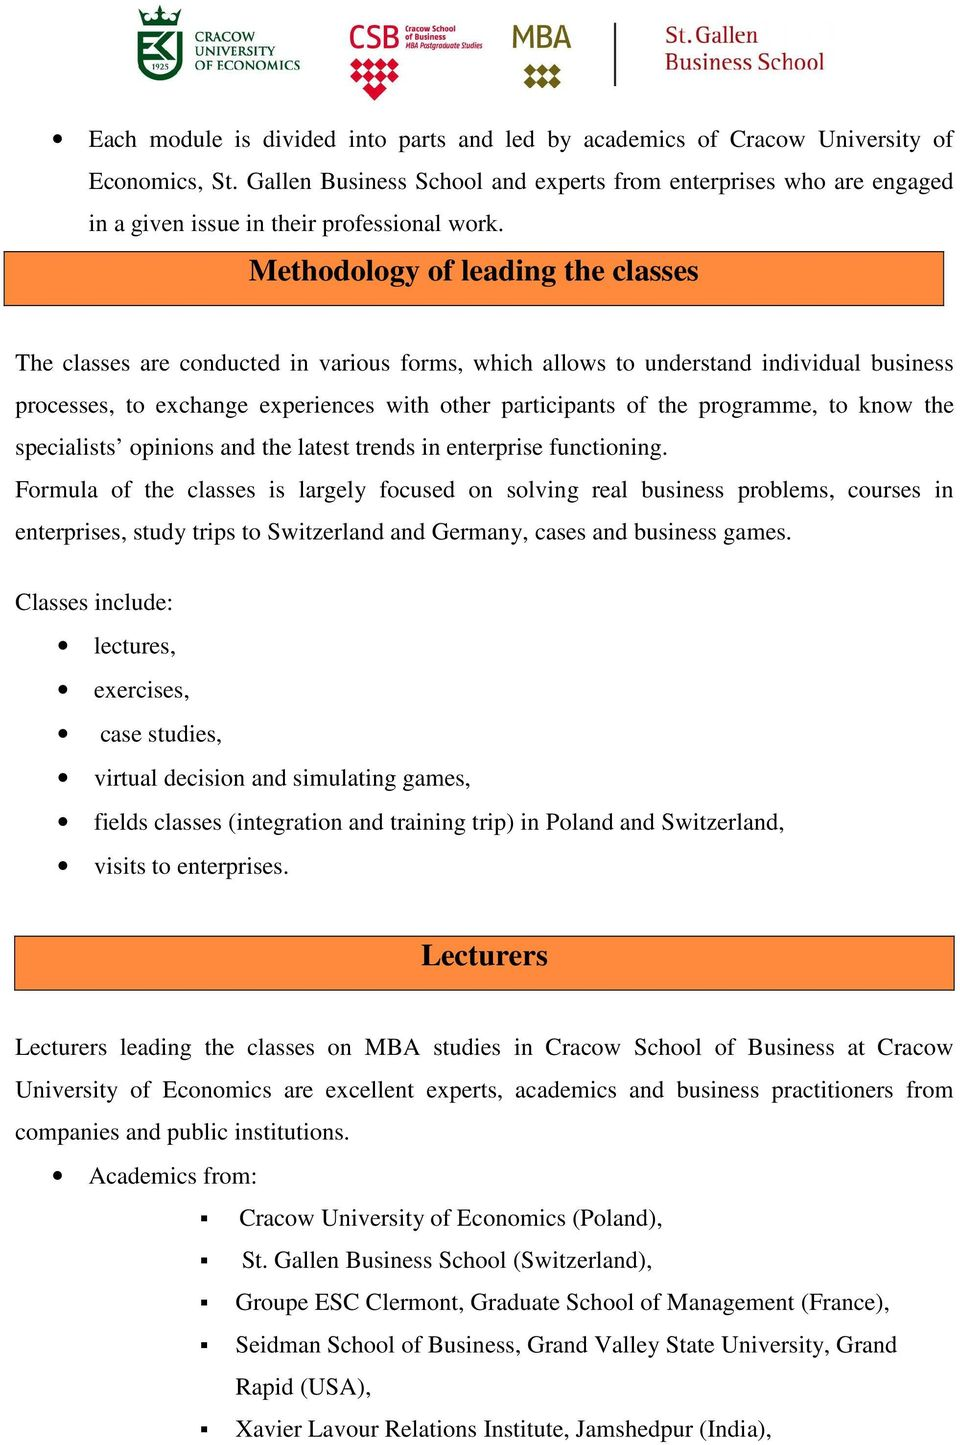 Methodology of leading the classes The classes are conducted in various forms, which allows to understand individual business processes, to exchange experiences with other participants of the